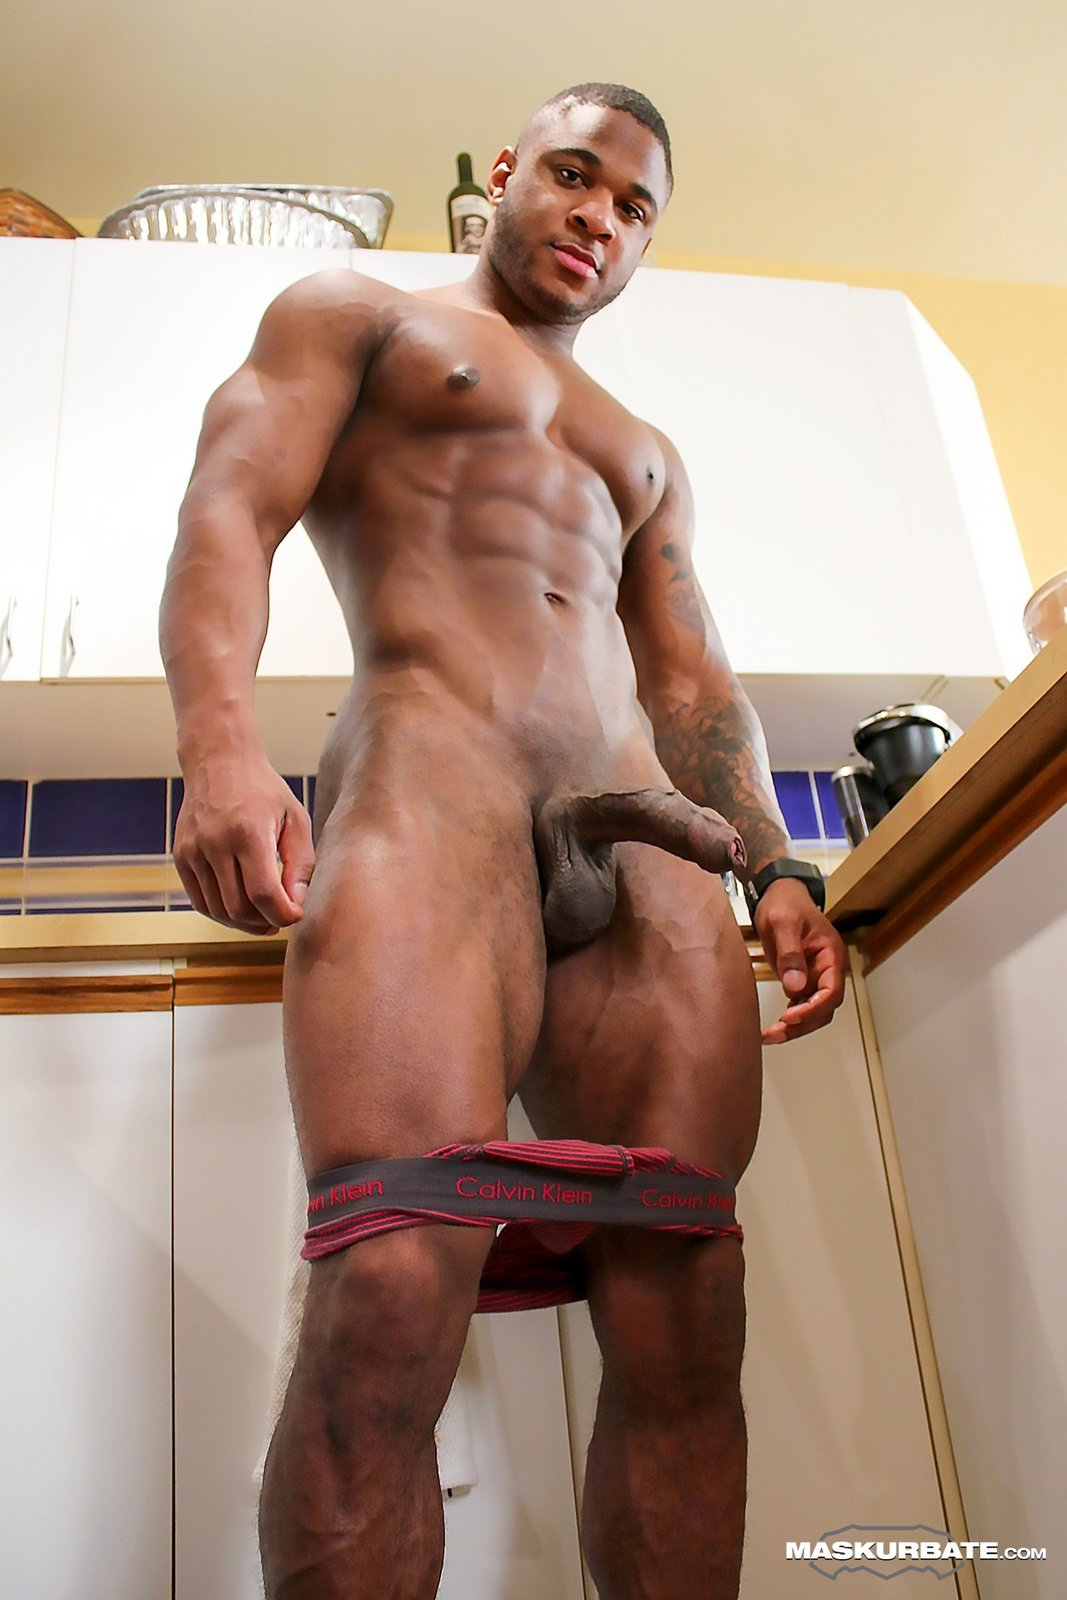 ...rentboys, gay escort reviews, gay masseurs and models, gay erotic and sensual massage, male porn stars and gay Big